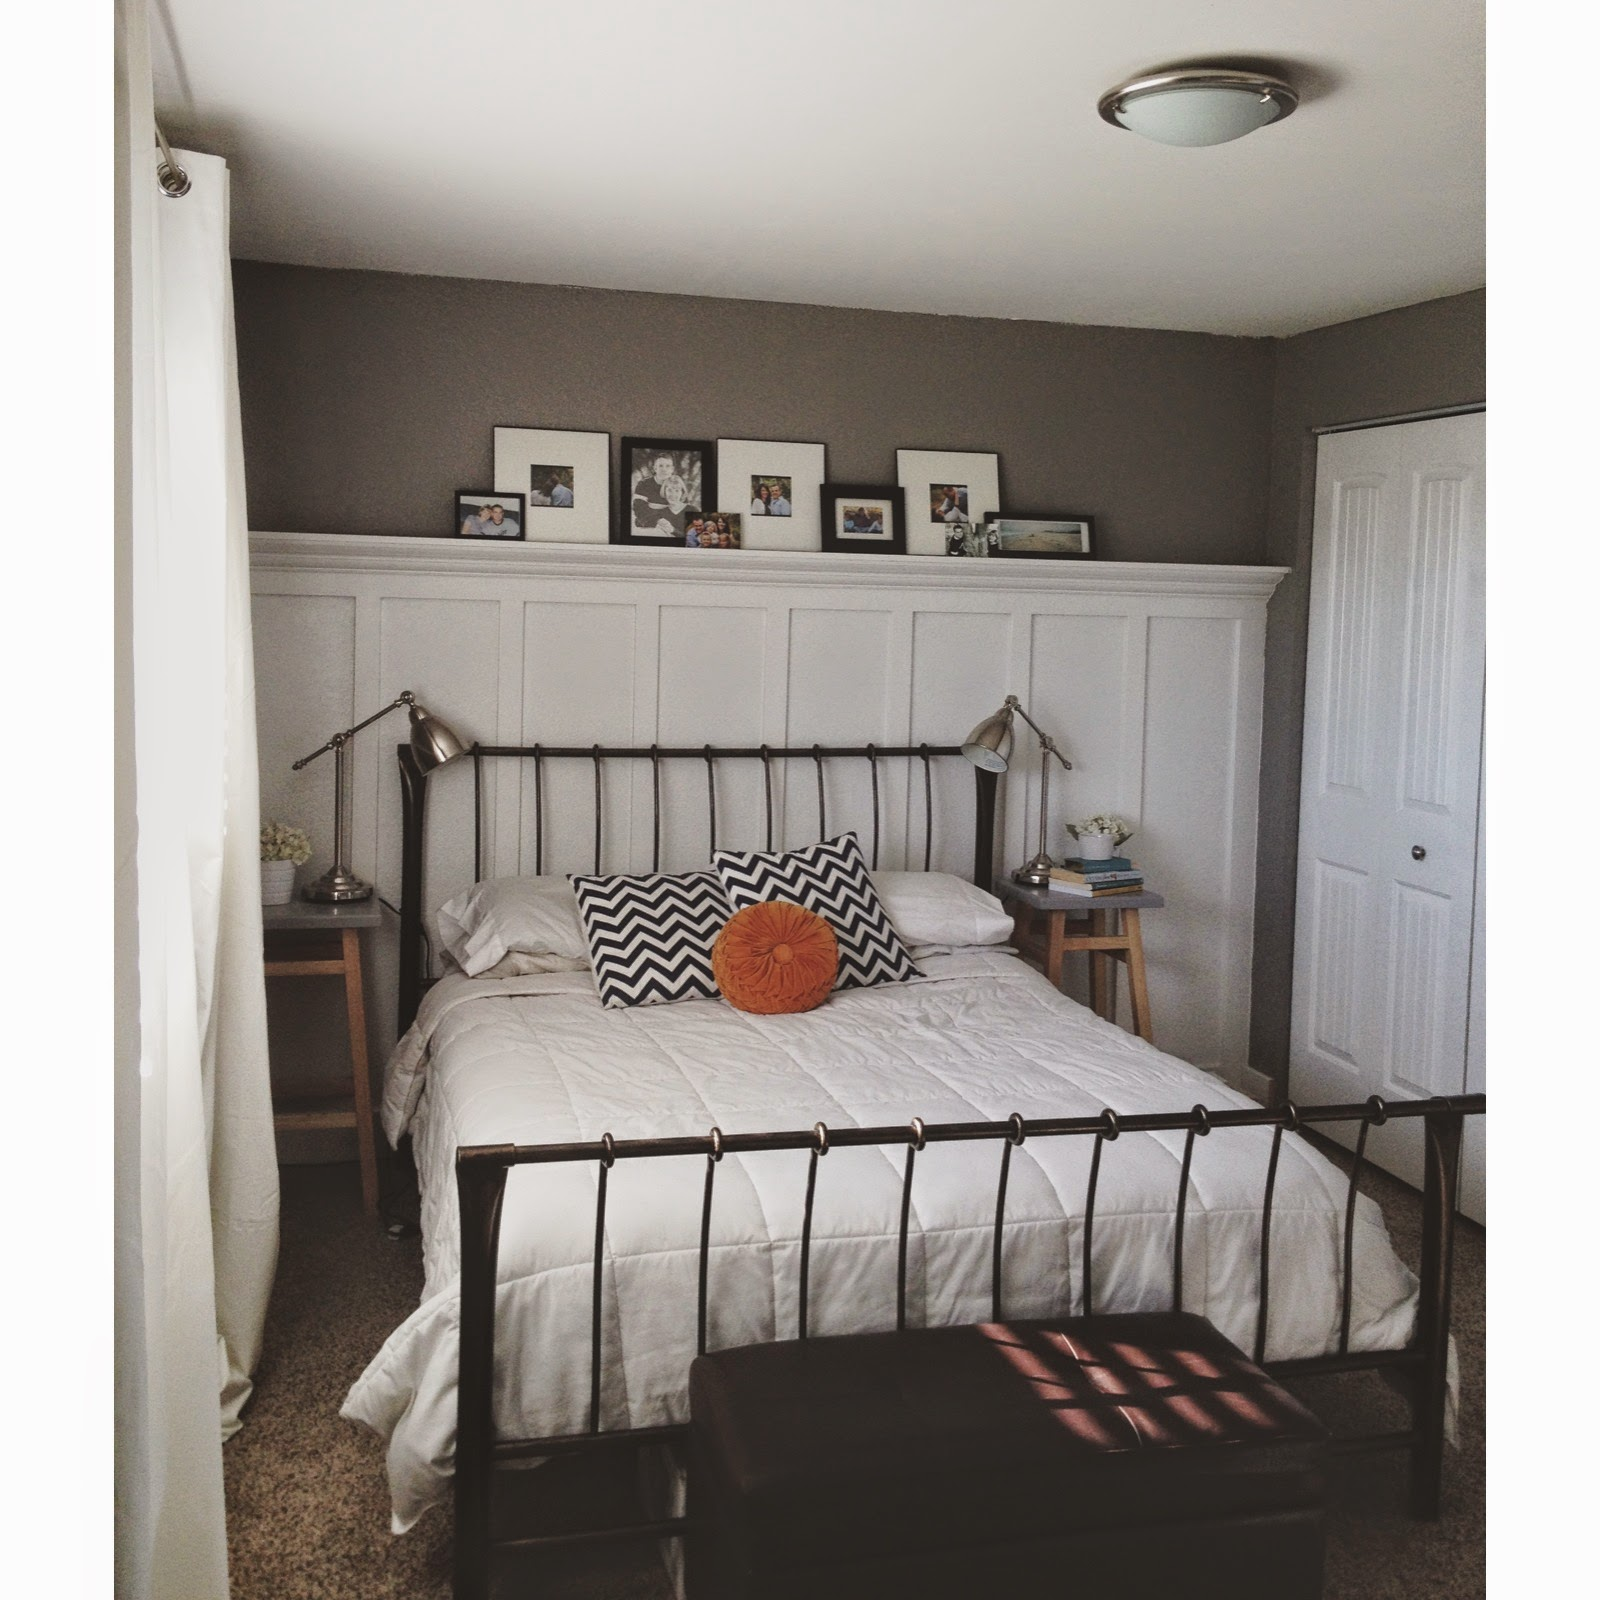 Keep home simple our split level fixer upper for Split bedroom